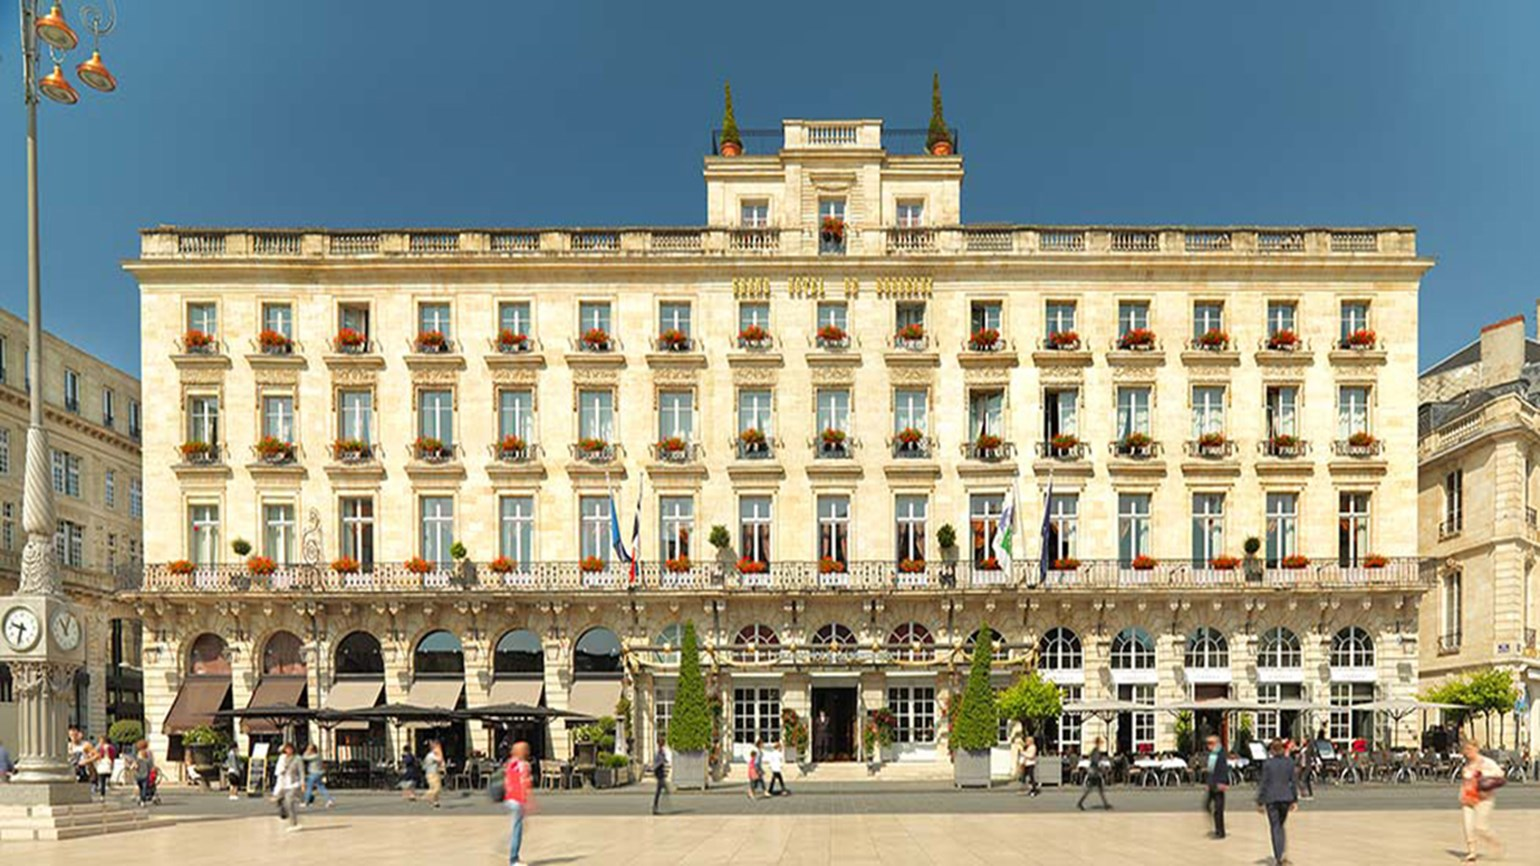 InterContinental to reflag Bordeaux hotel